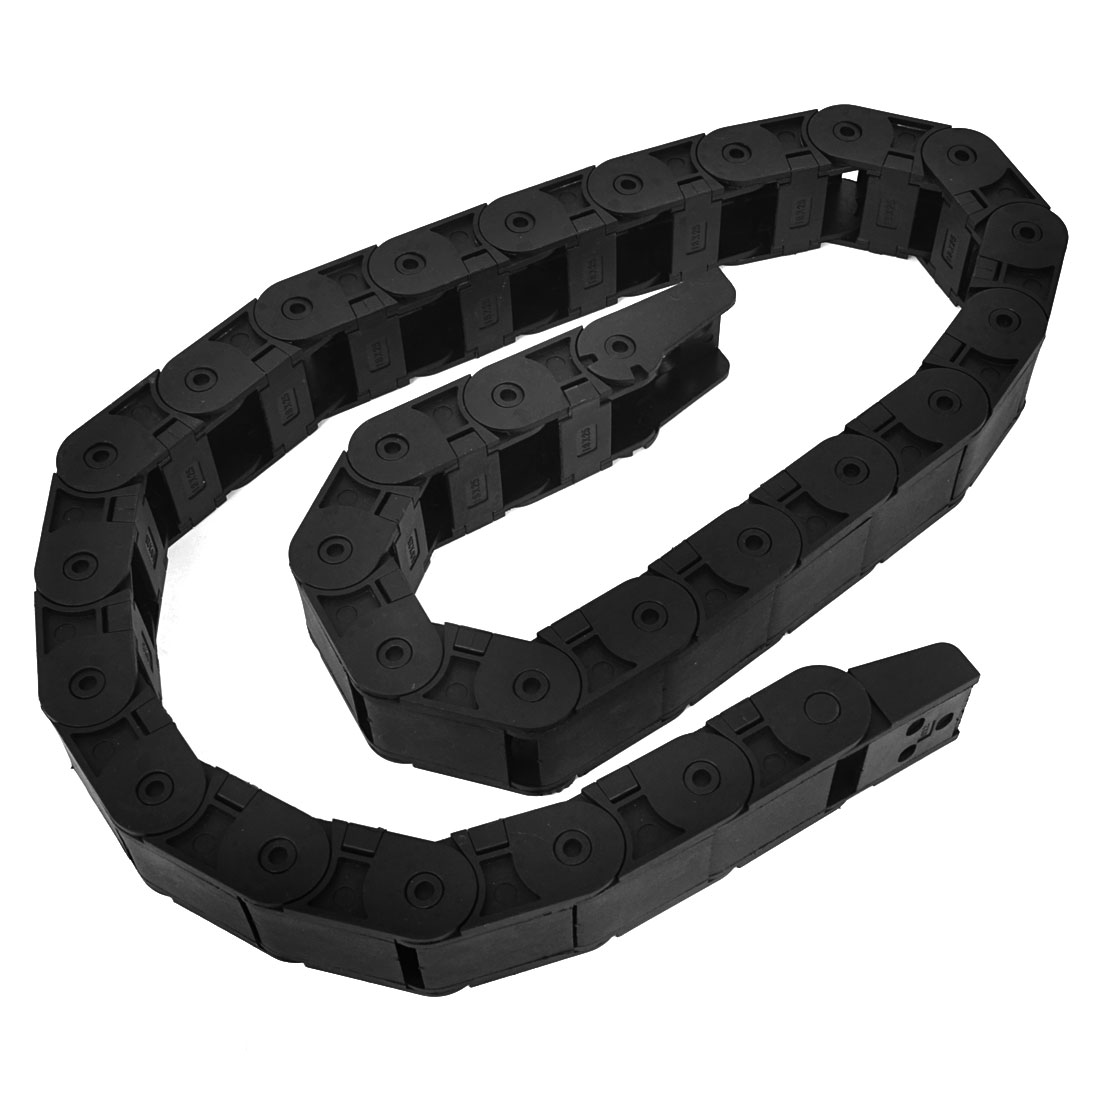 Black Open Type Towline Cable Carrier Drag Chain 18 x 25mm 103cm Long